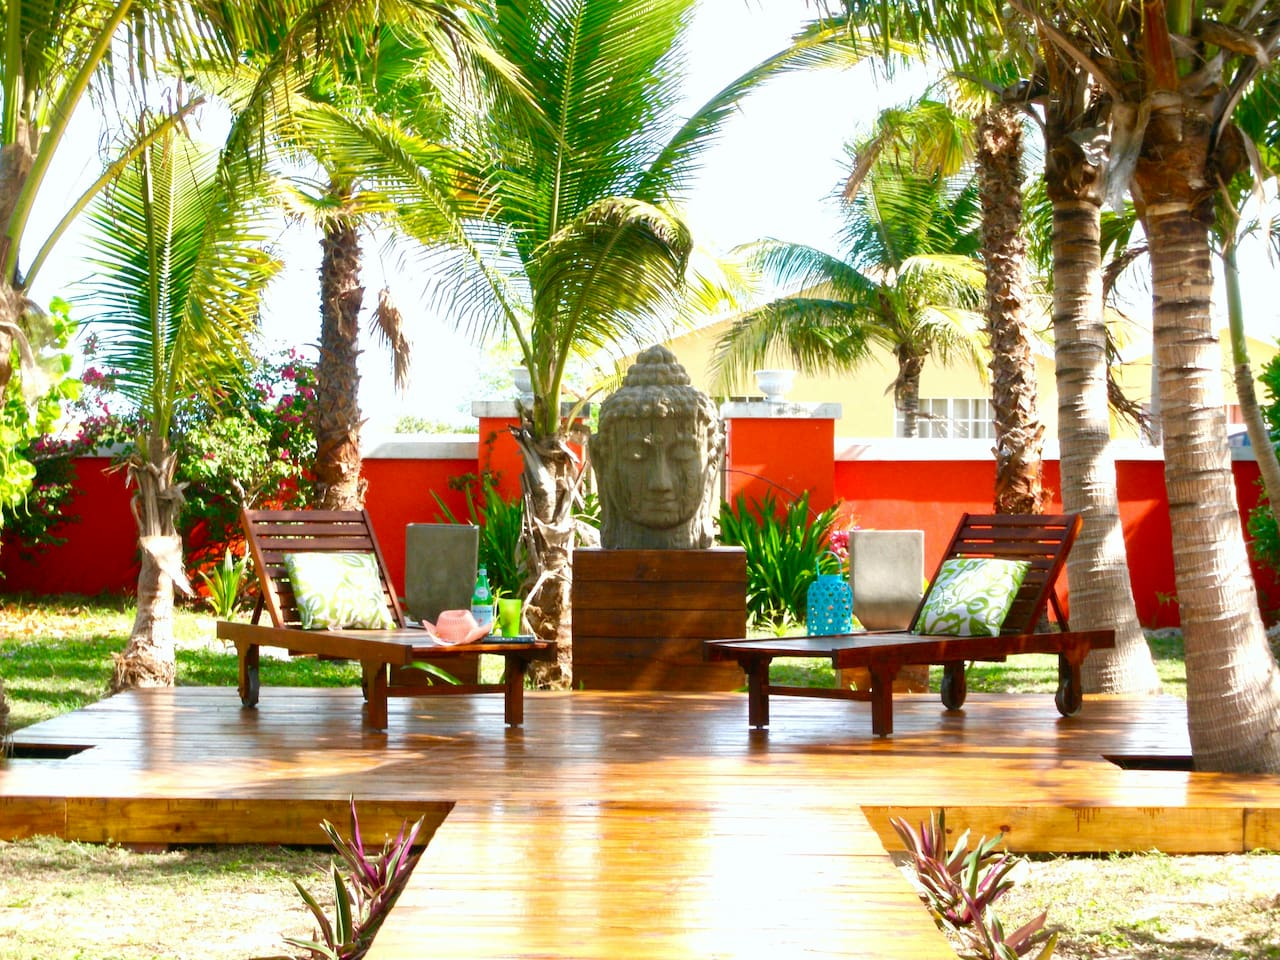 The Buddha Lounge under Coconut Palms